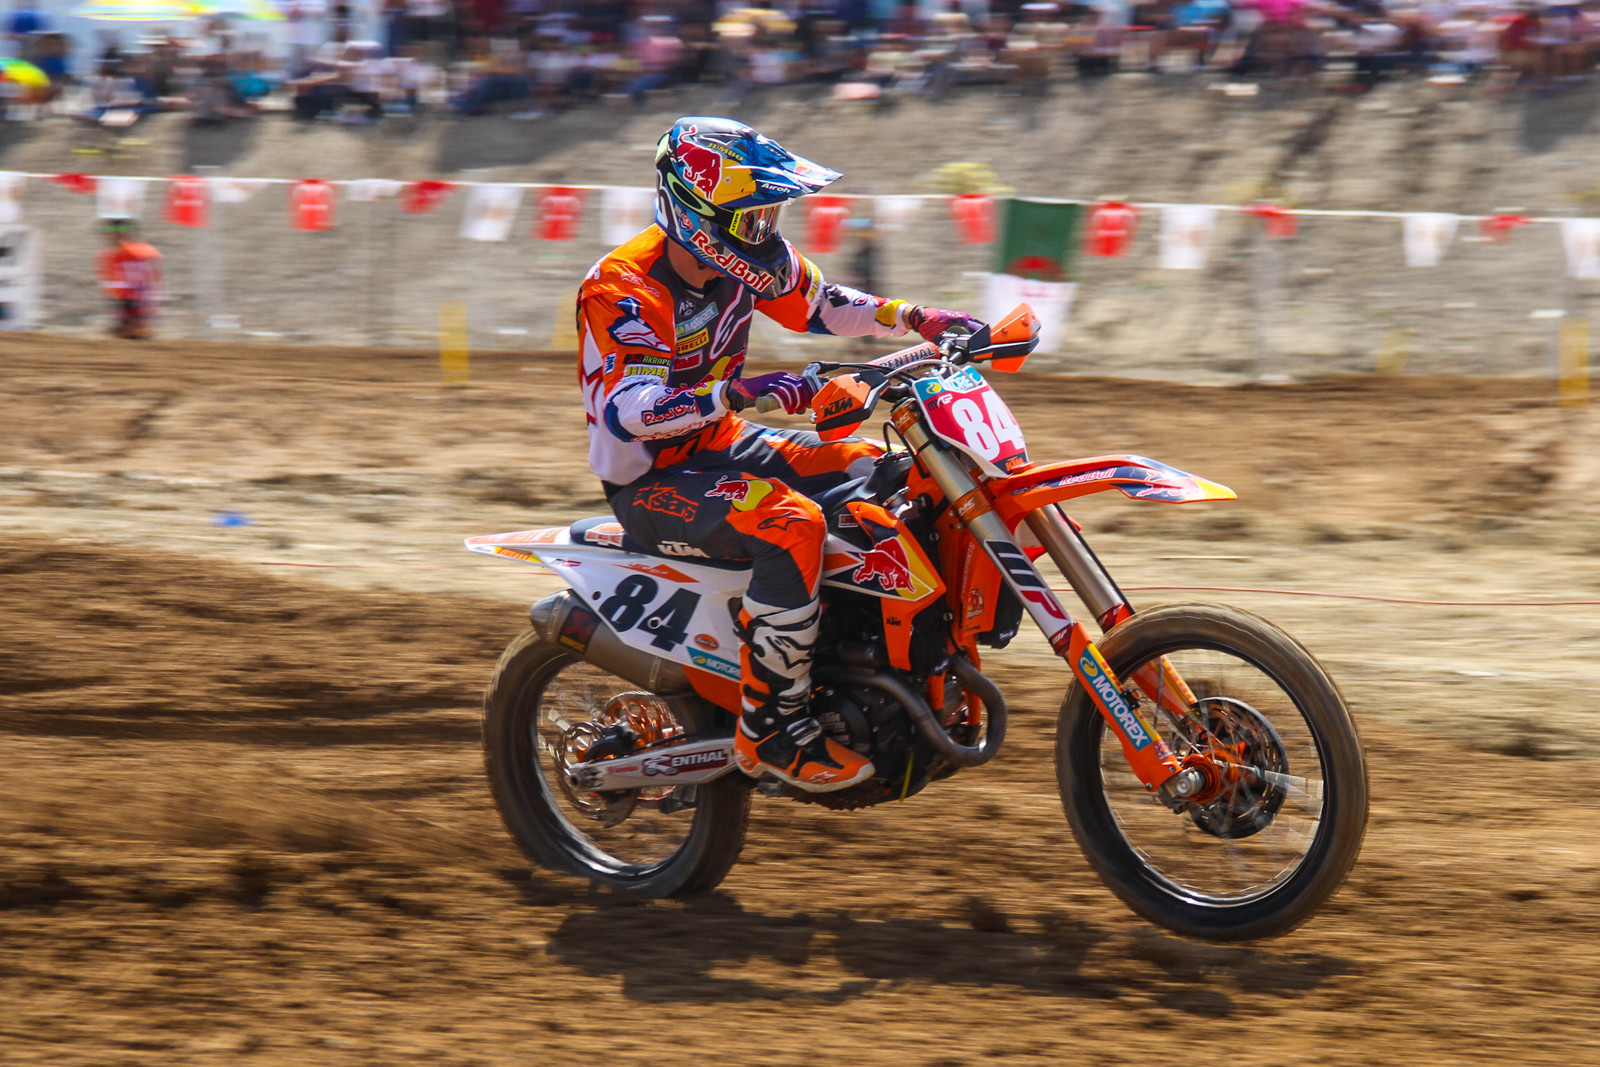 Injury Report: Jeffrey Herlings - Fractured Right Foot